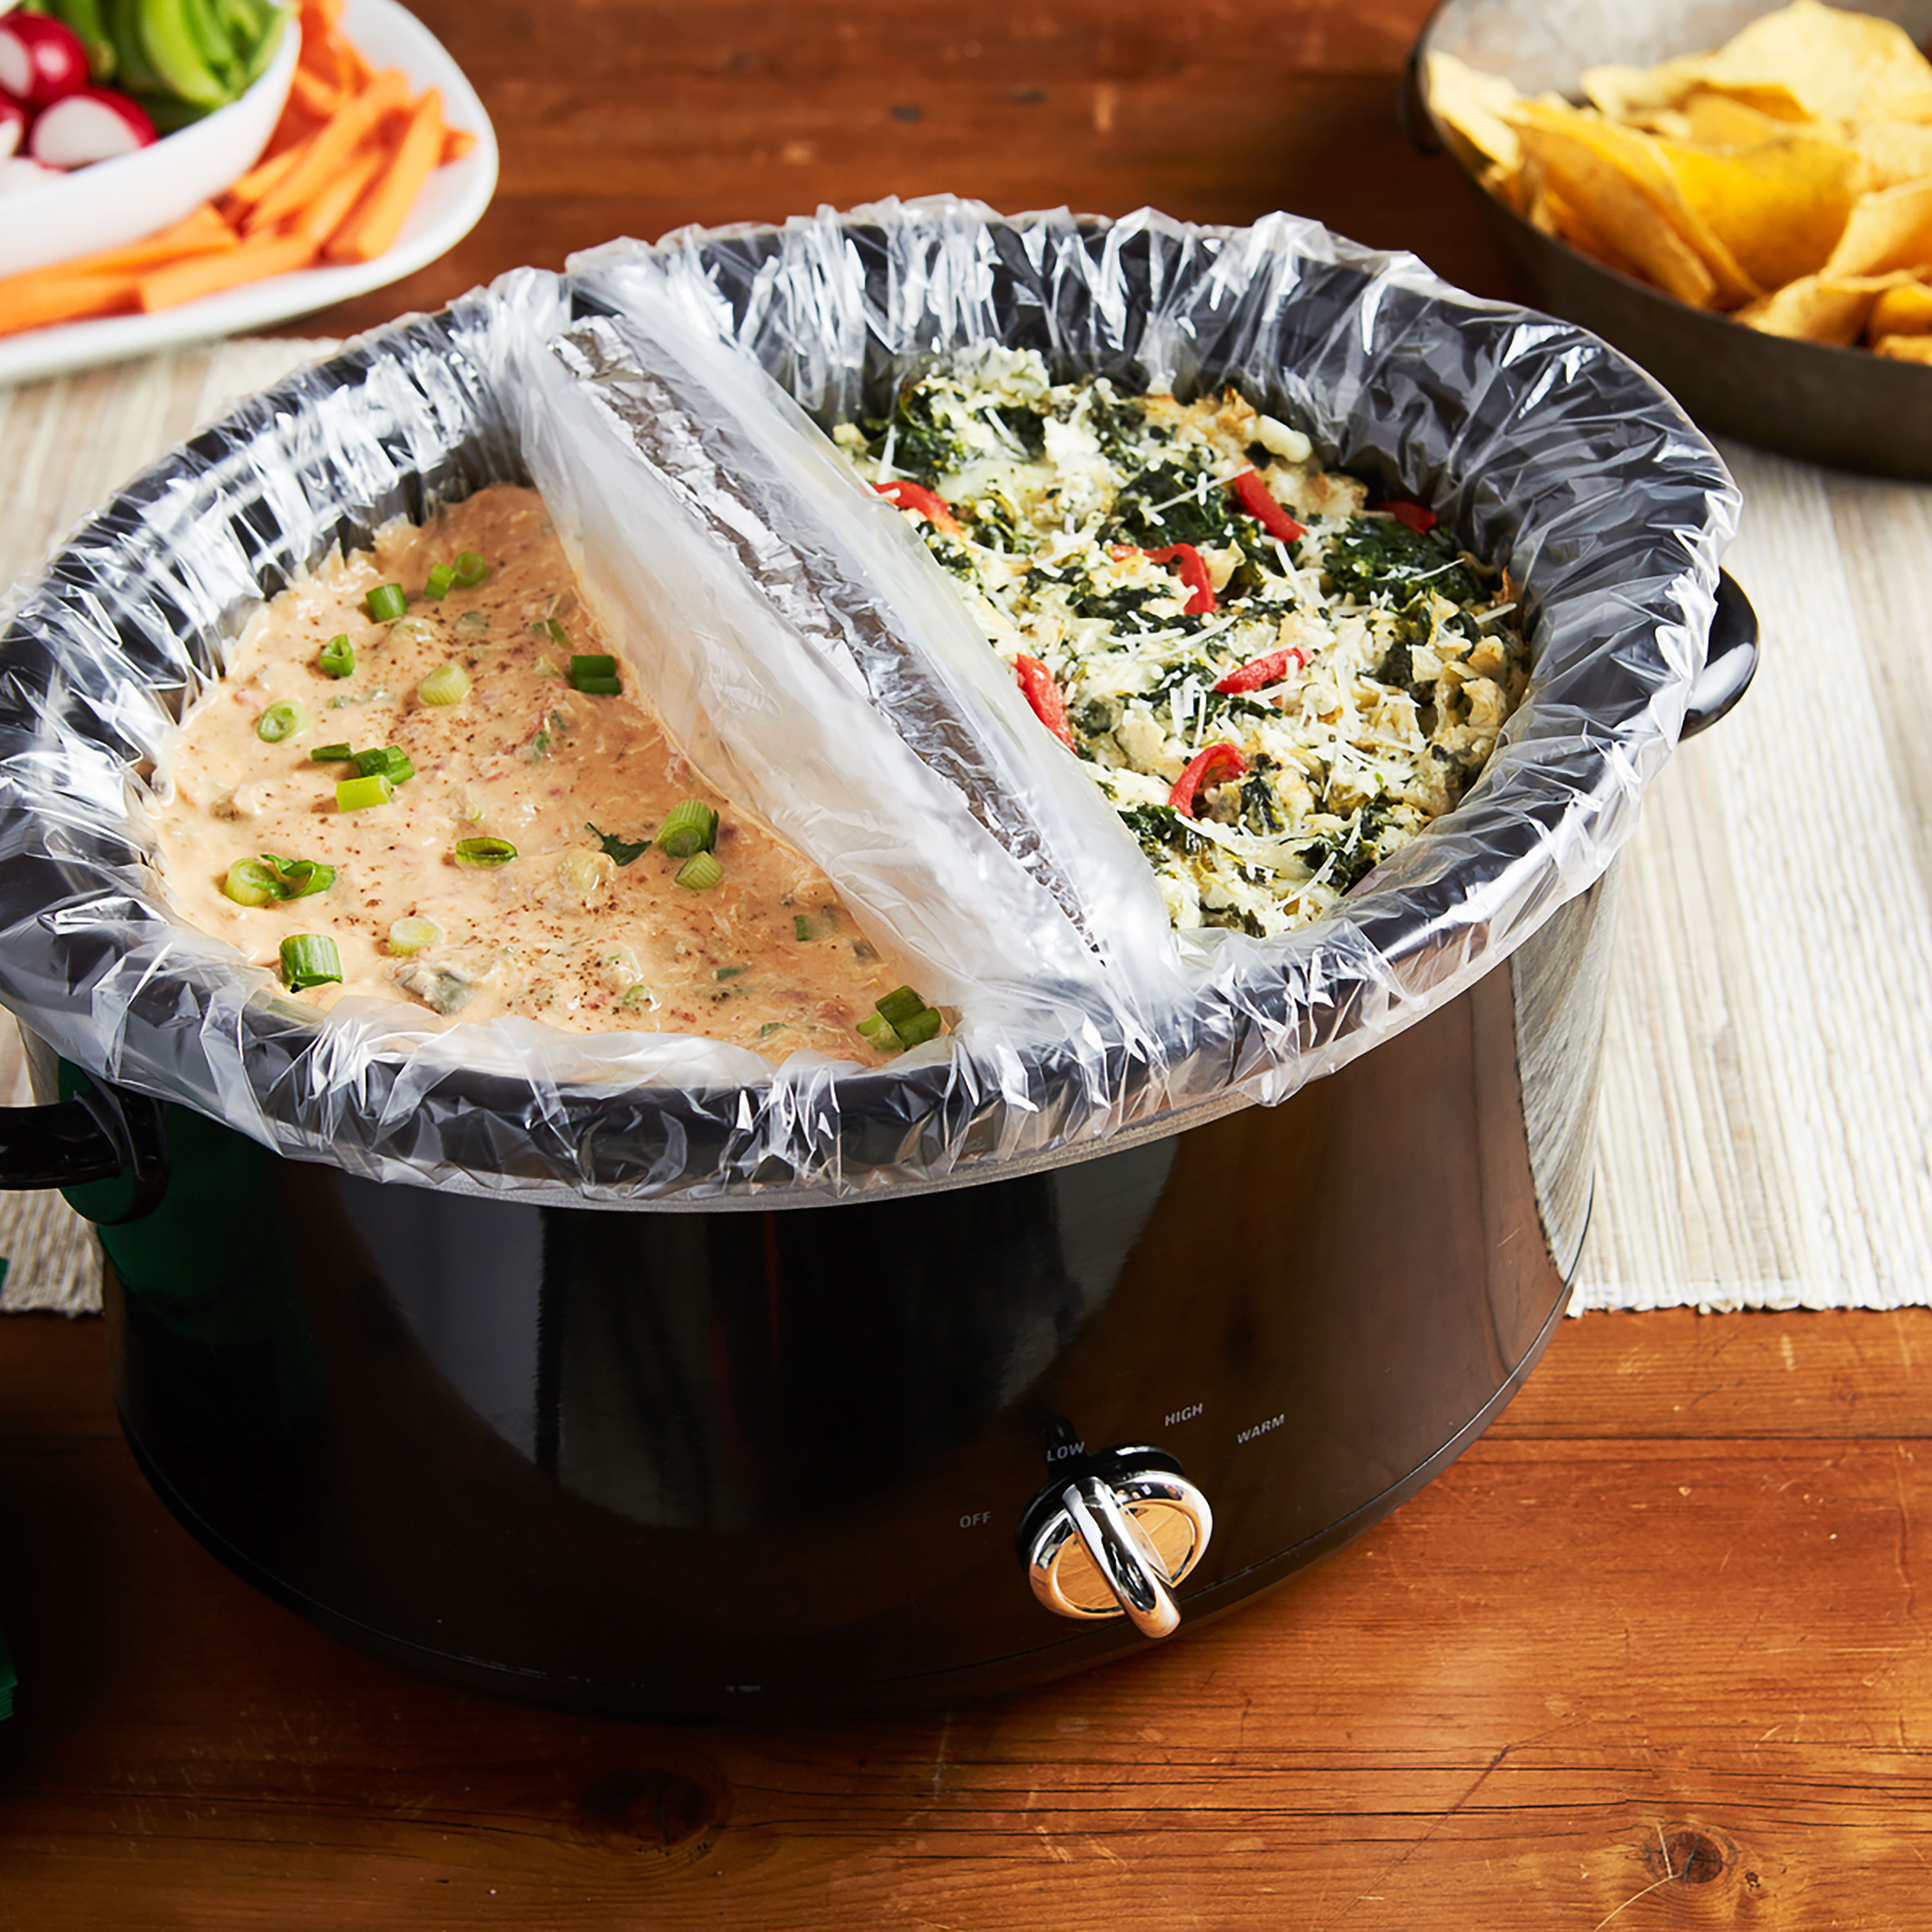 Can you use a crockpot liner as an oven bag